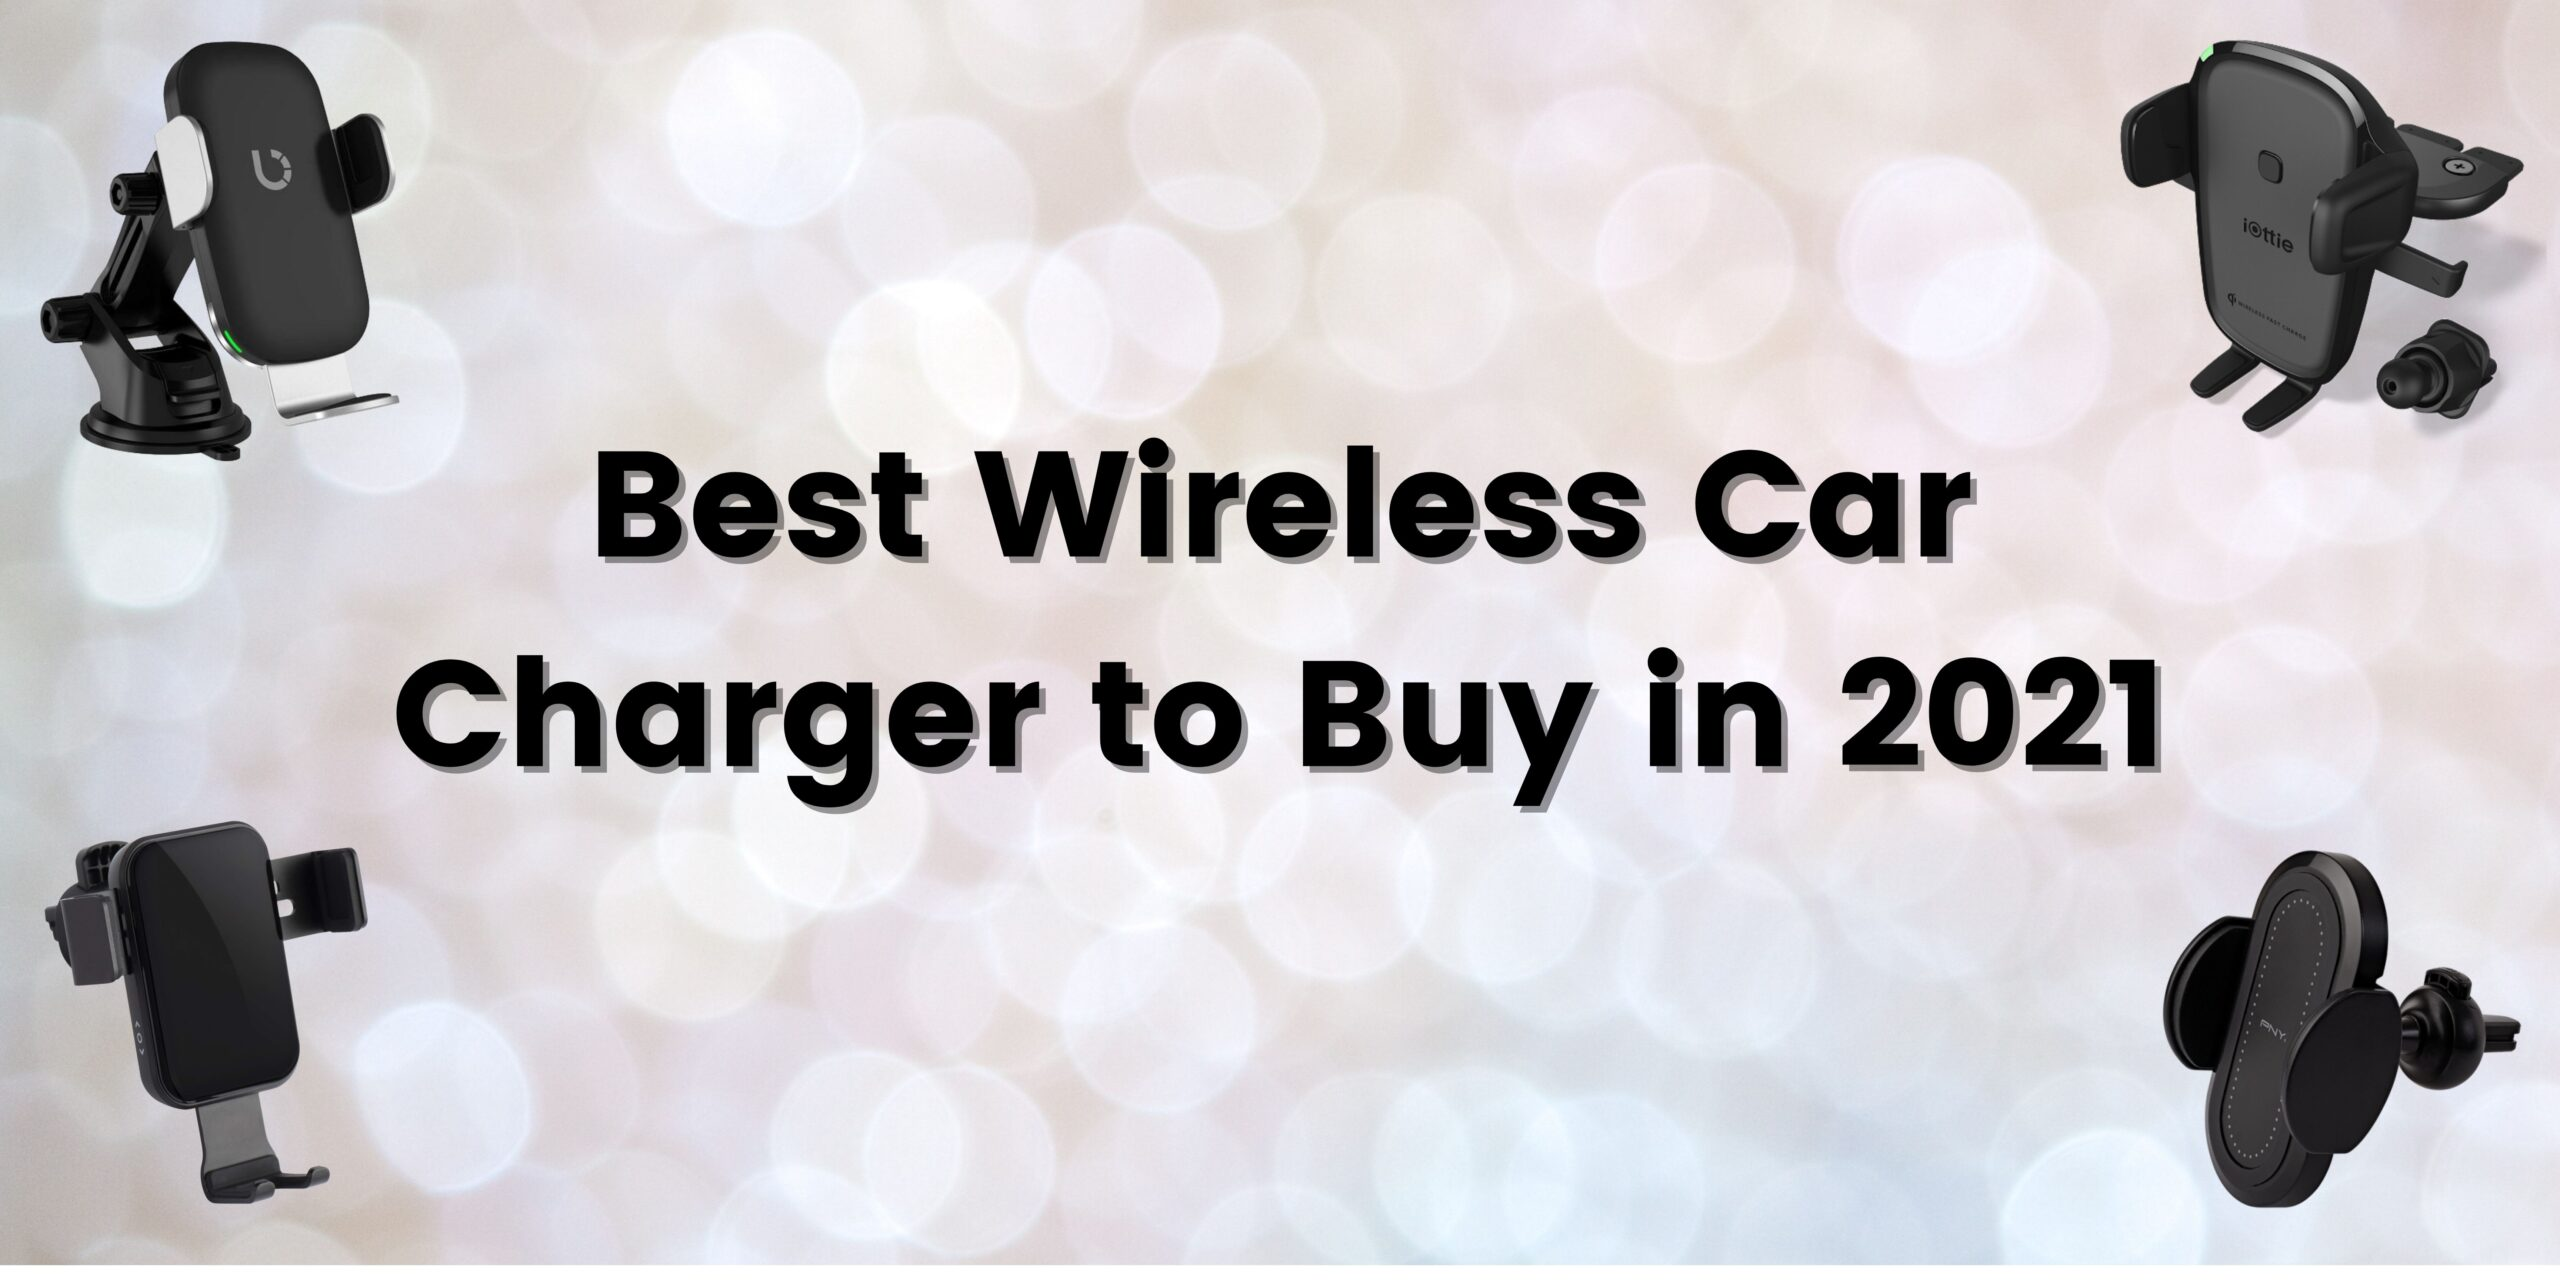 5 Best Wireless Car Charger to Buy in 2021